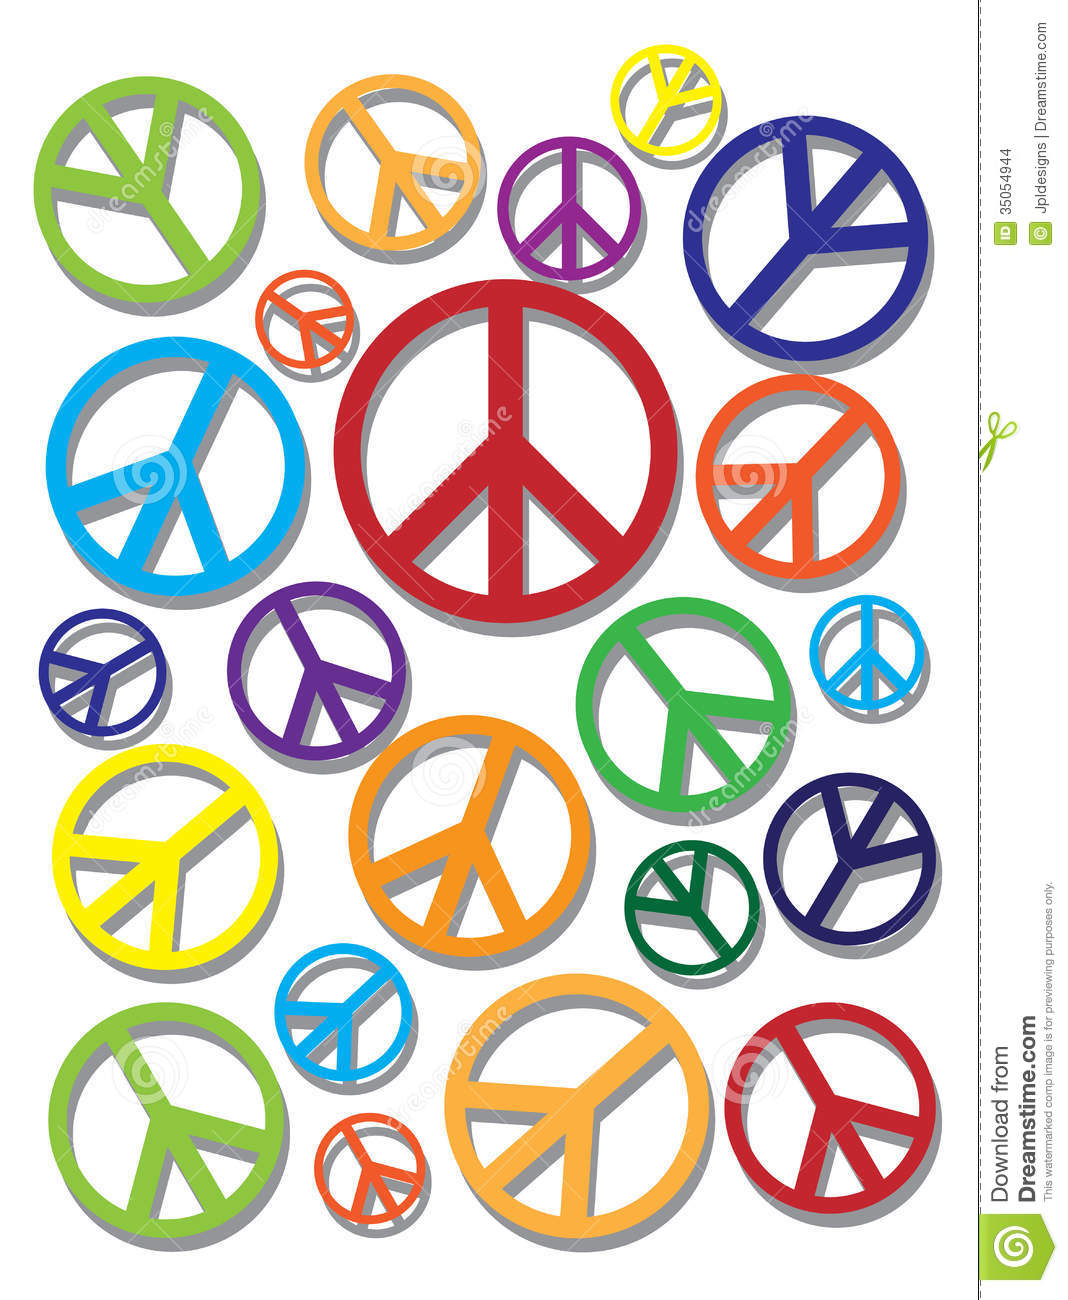 Colorful peace symbol on texture background stock vector colorful peace symbol on texture background biocorpaavc Images